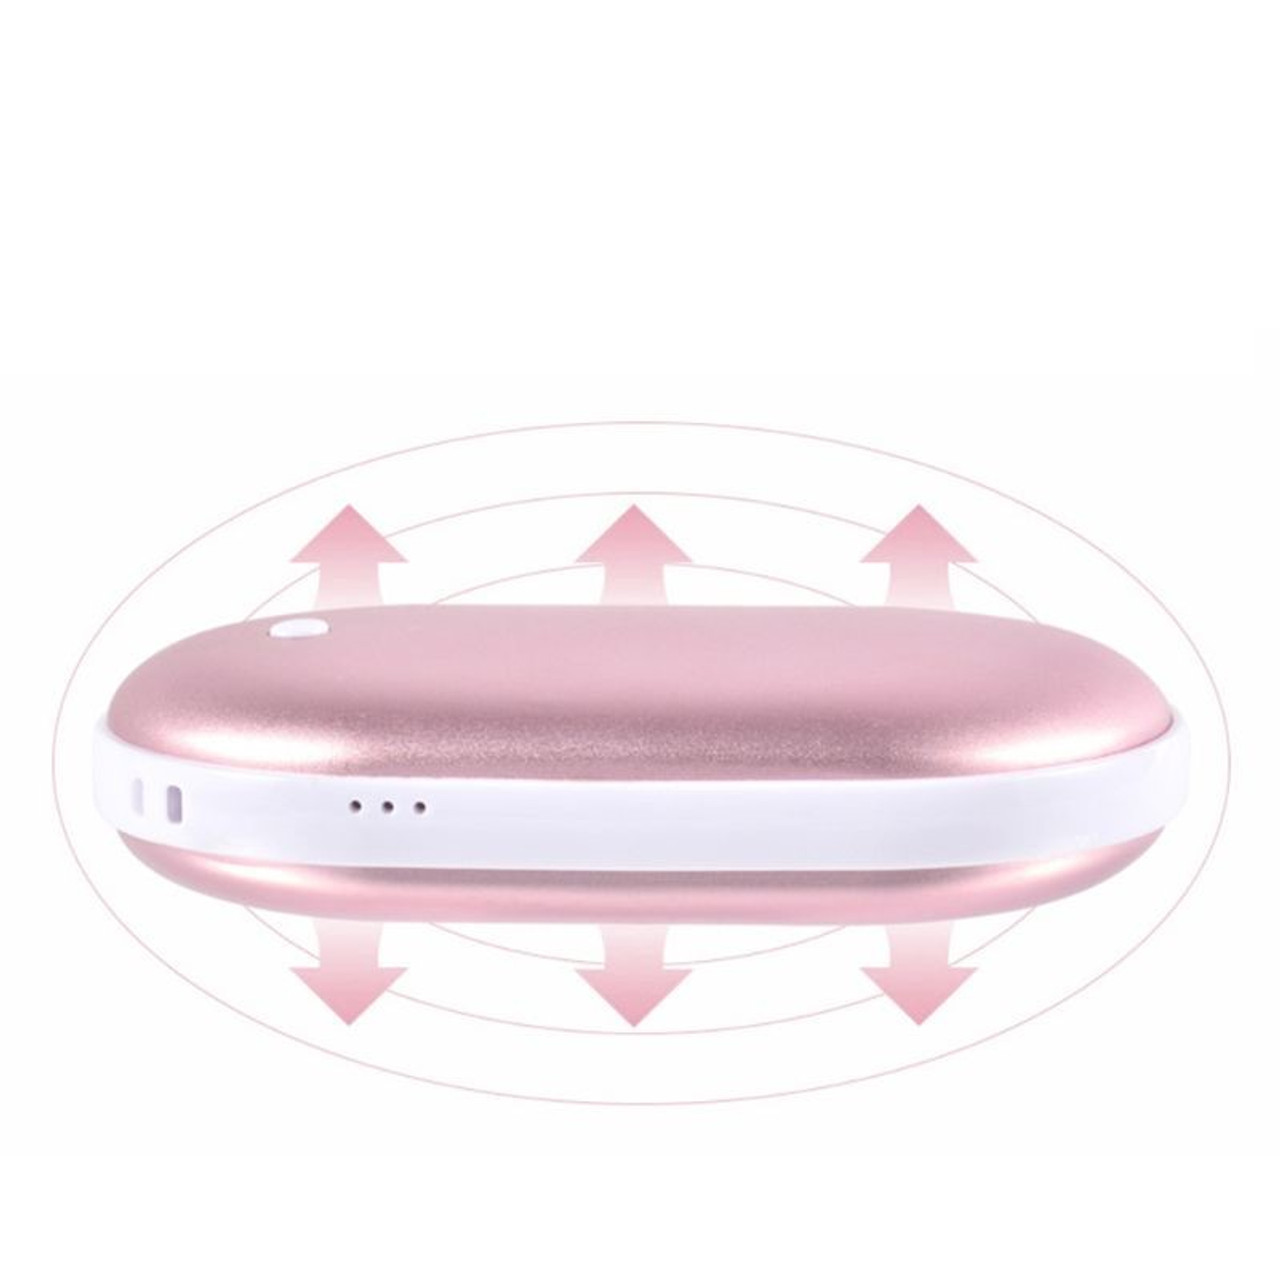 2-in-1 Cozy Palm Electric Hand Warmer and 5200mAh Power Bank